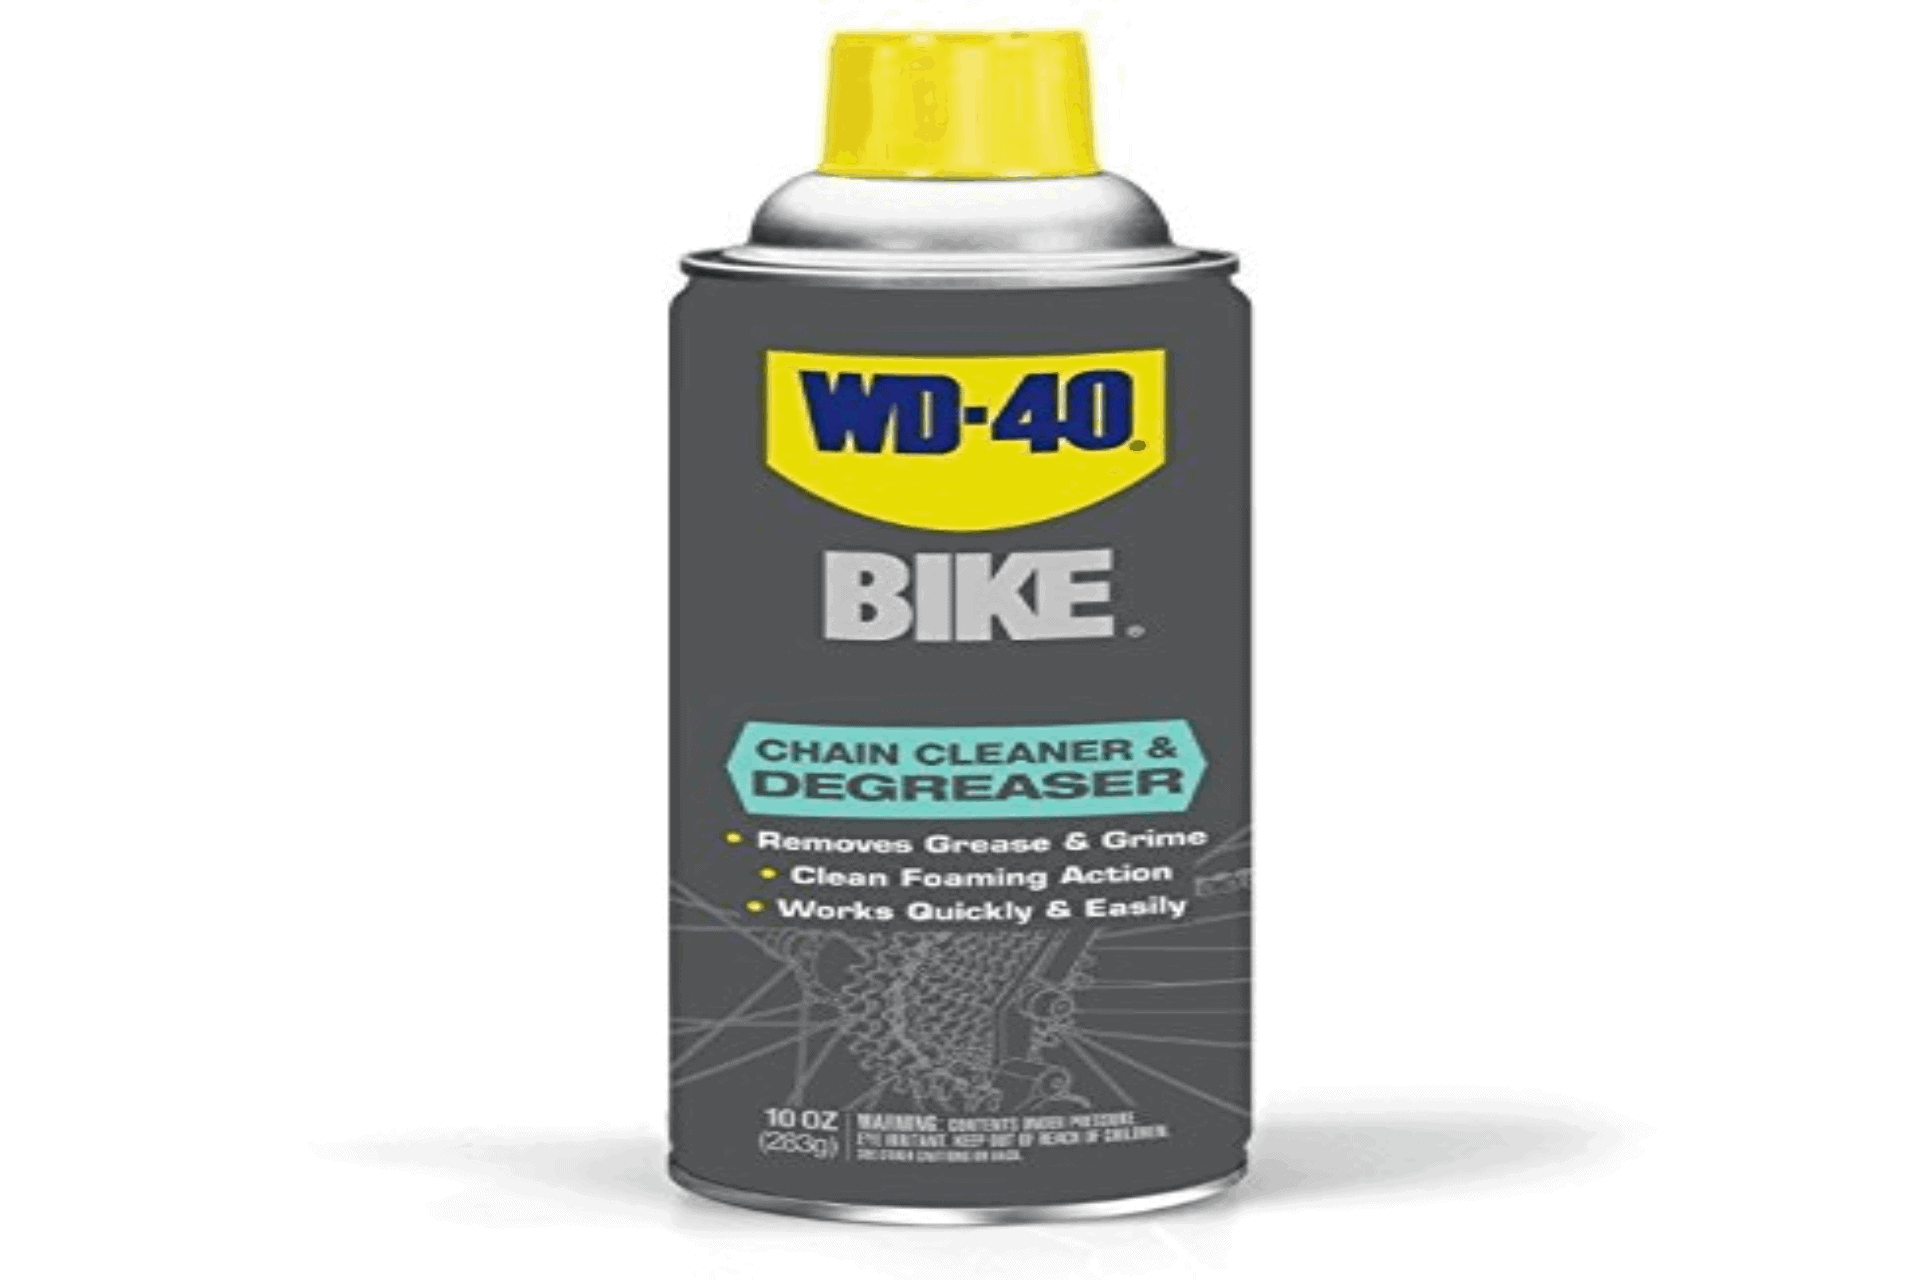 bike chain cleaner and degreaser